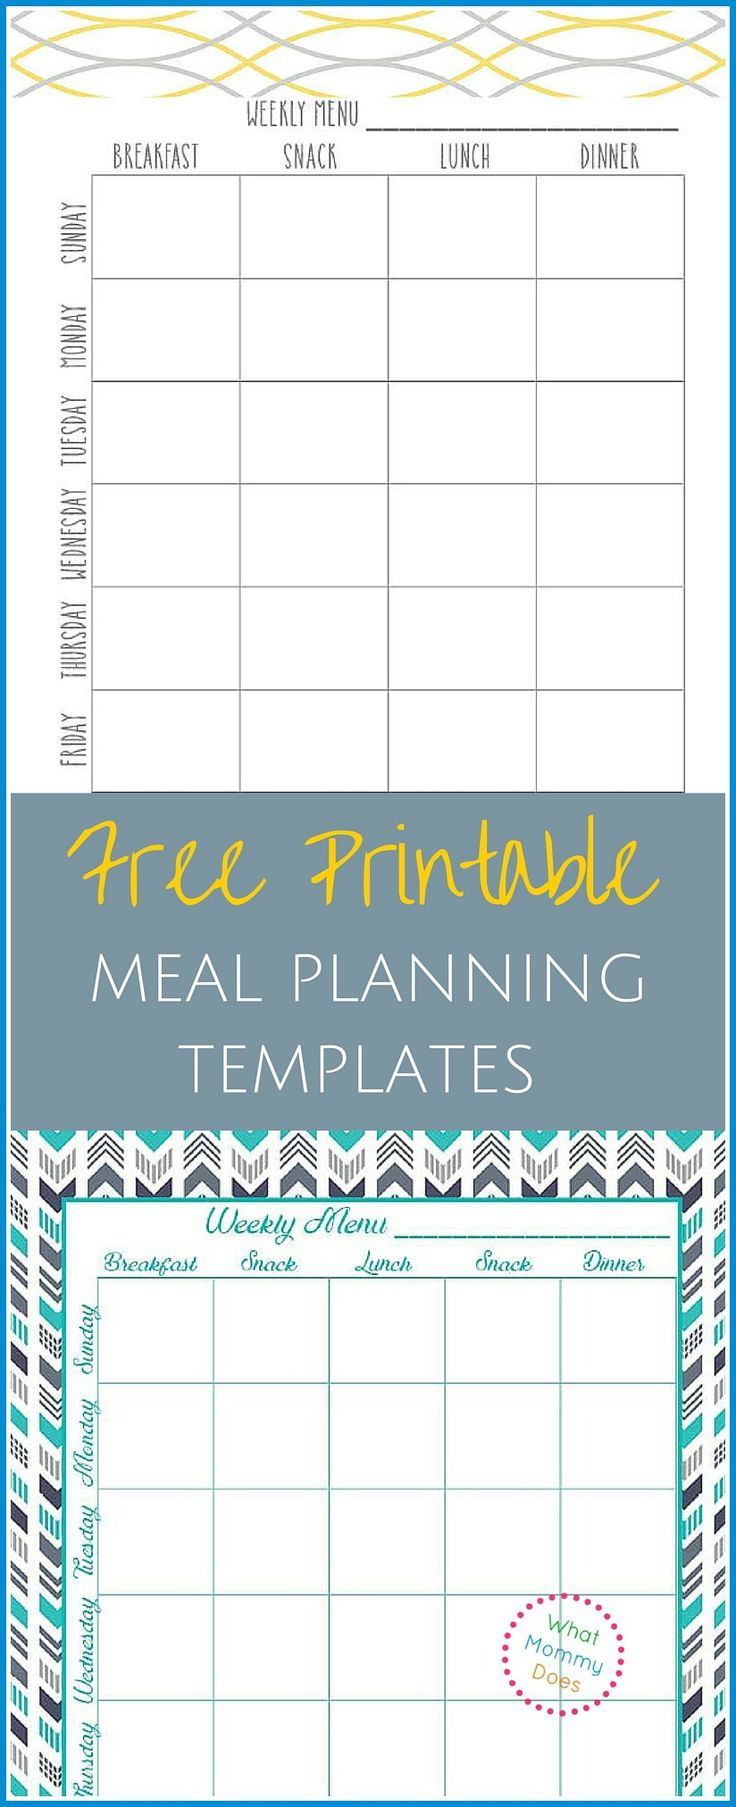 These two meal planning templates are a MUST HAVE for any mom who needs to plan out her weekly menu all at once. I started doing this and it has saved me so much time AND money! #moneysavingidea #free